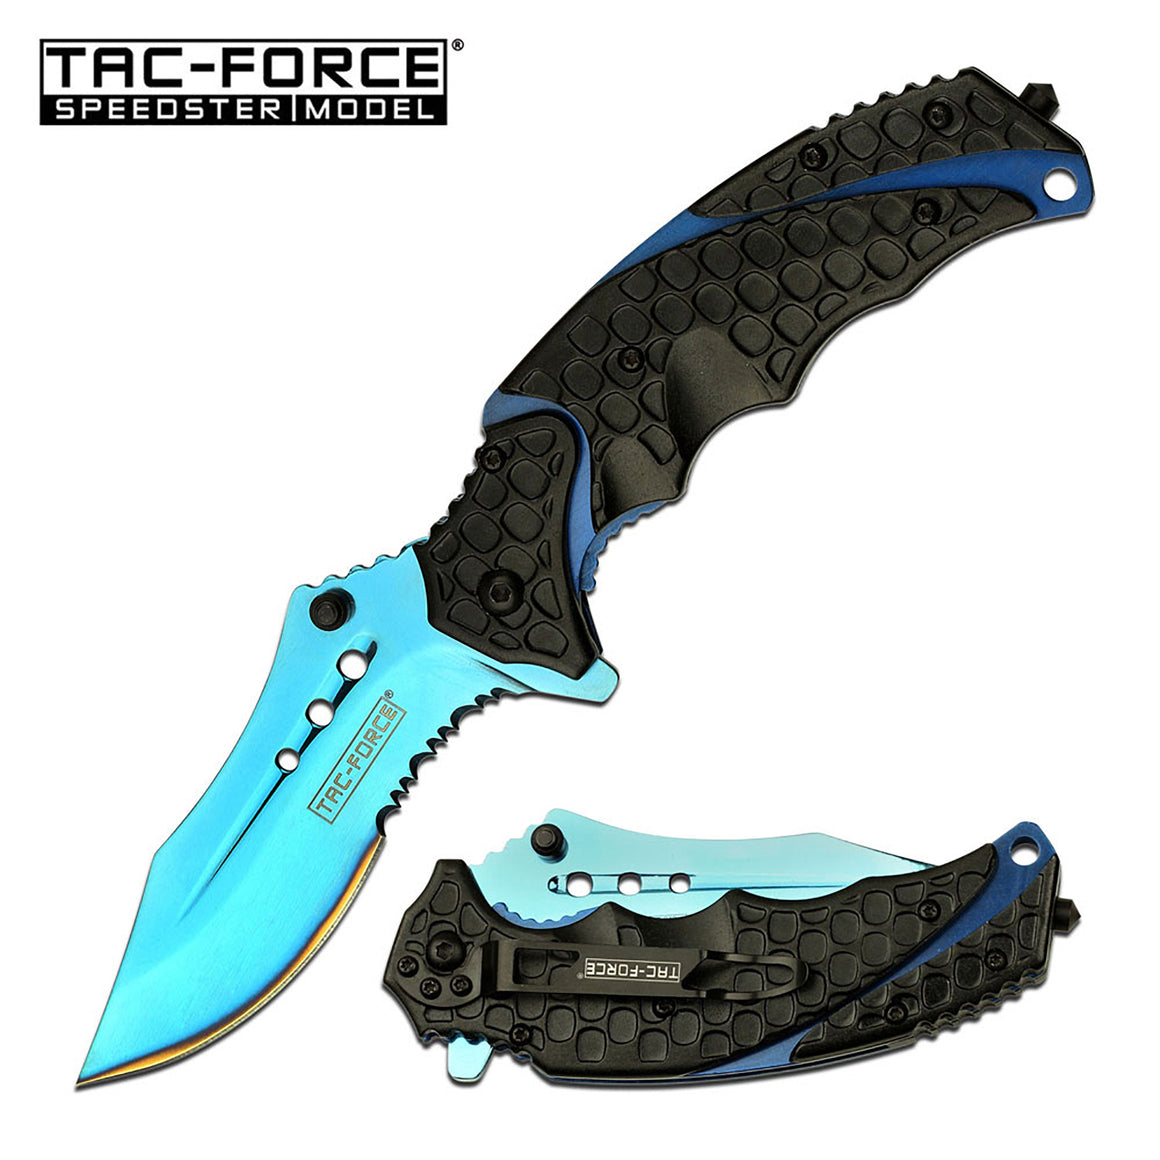 Tac-Force TF-943BB Spring Assisted Knife